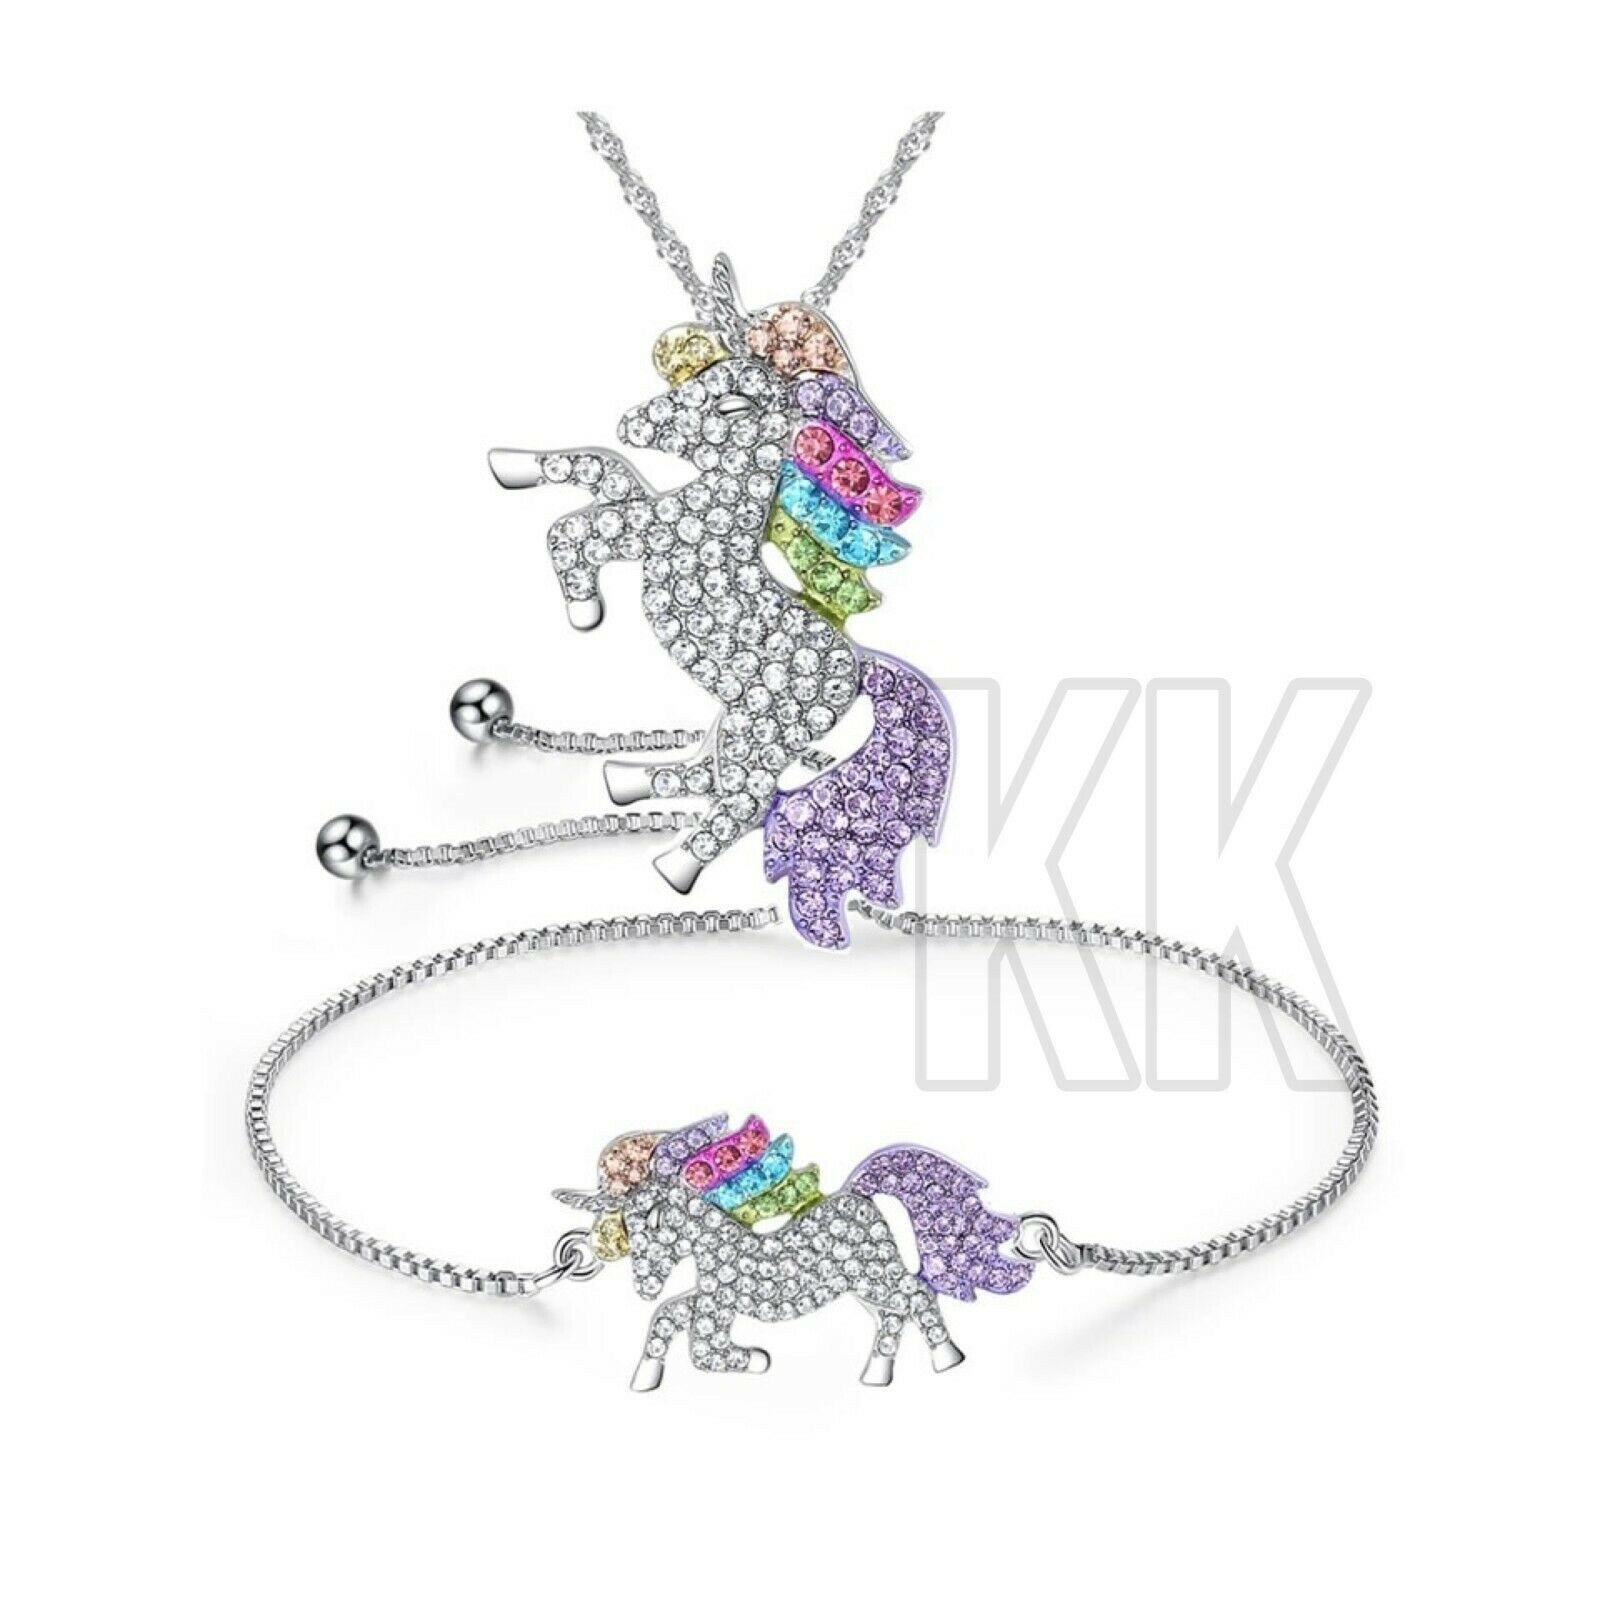 Jewellery - Unicorn Pendant Necklace Chain Flying Horse Kids Girls Jewellery Party Gifts NEW